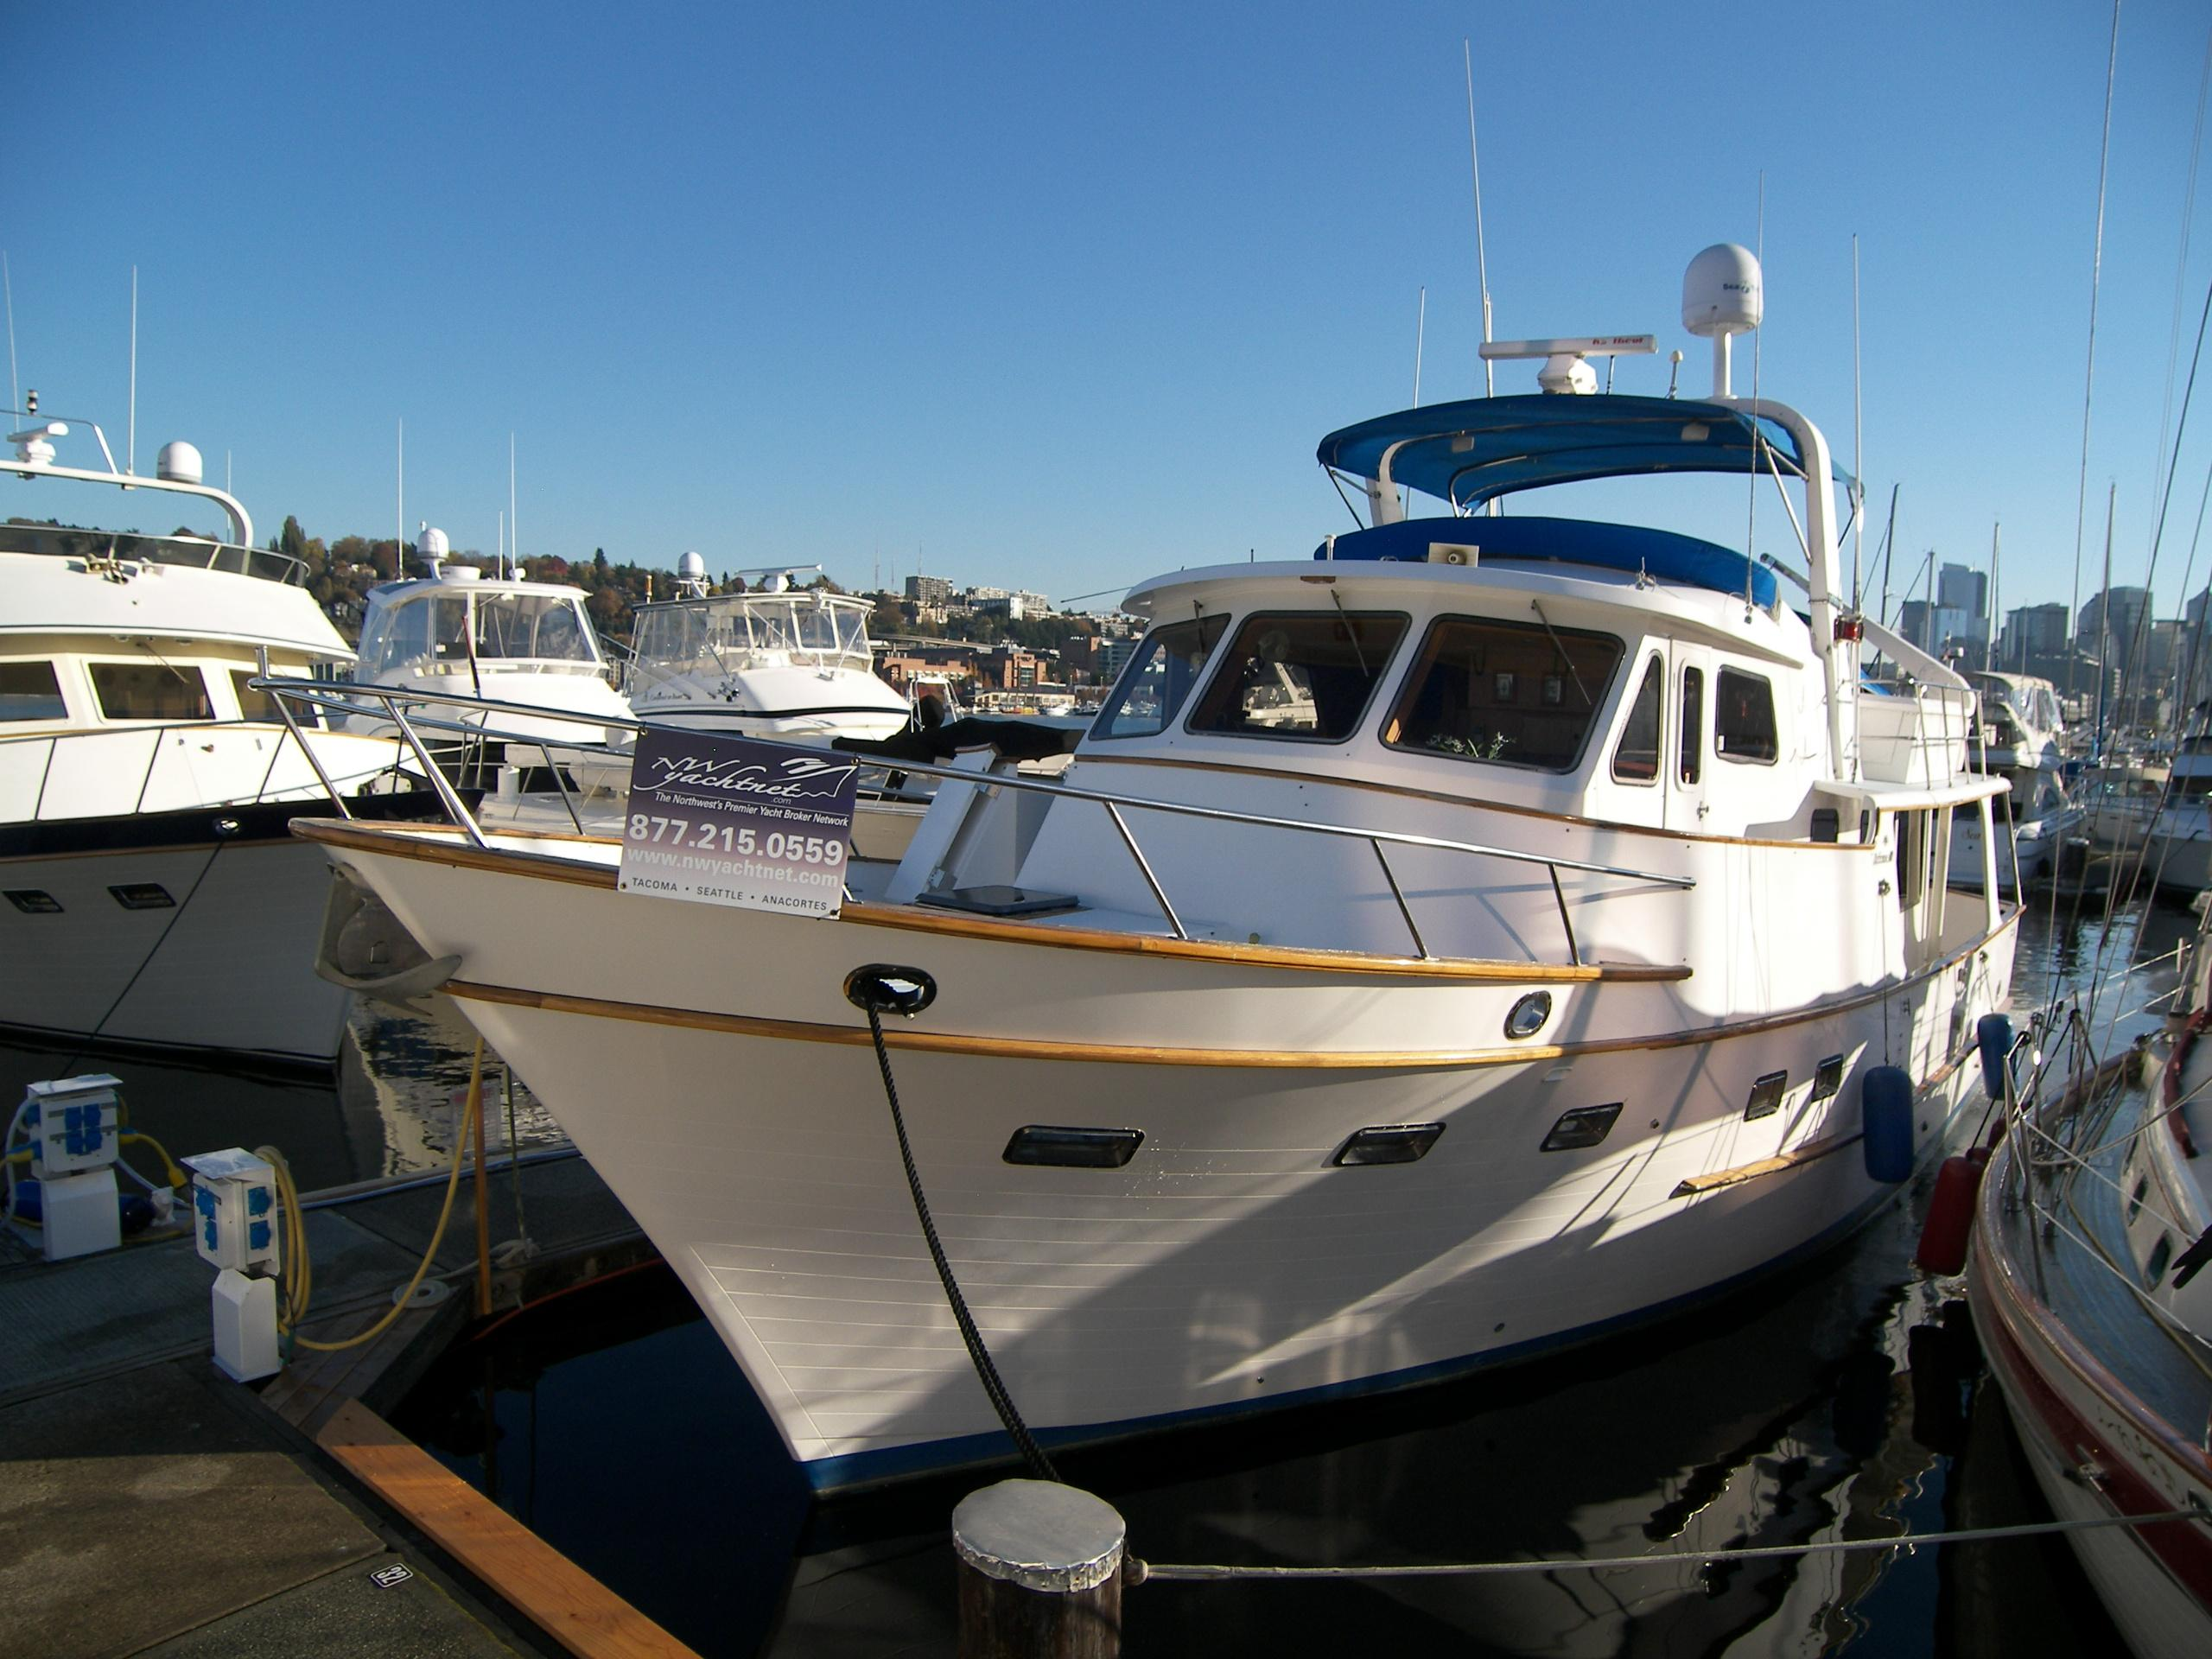 Sold Boats Nw Yachtnet